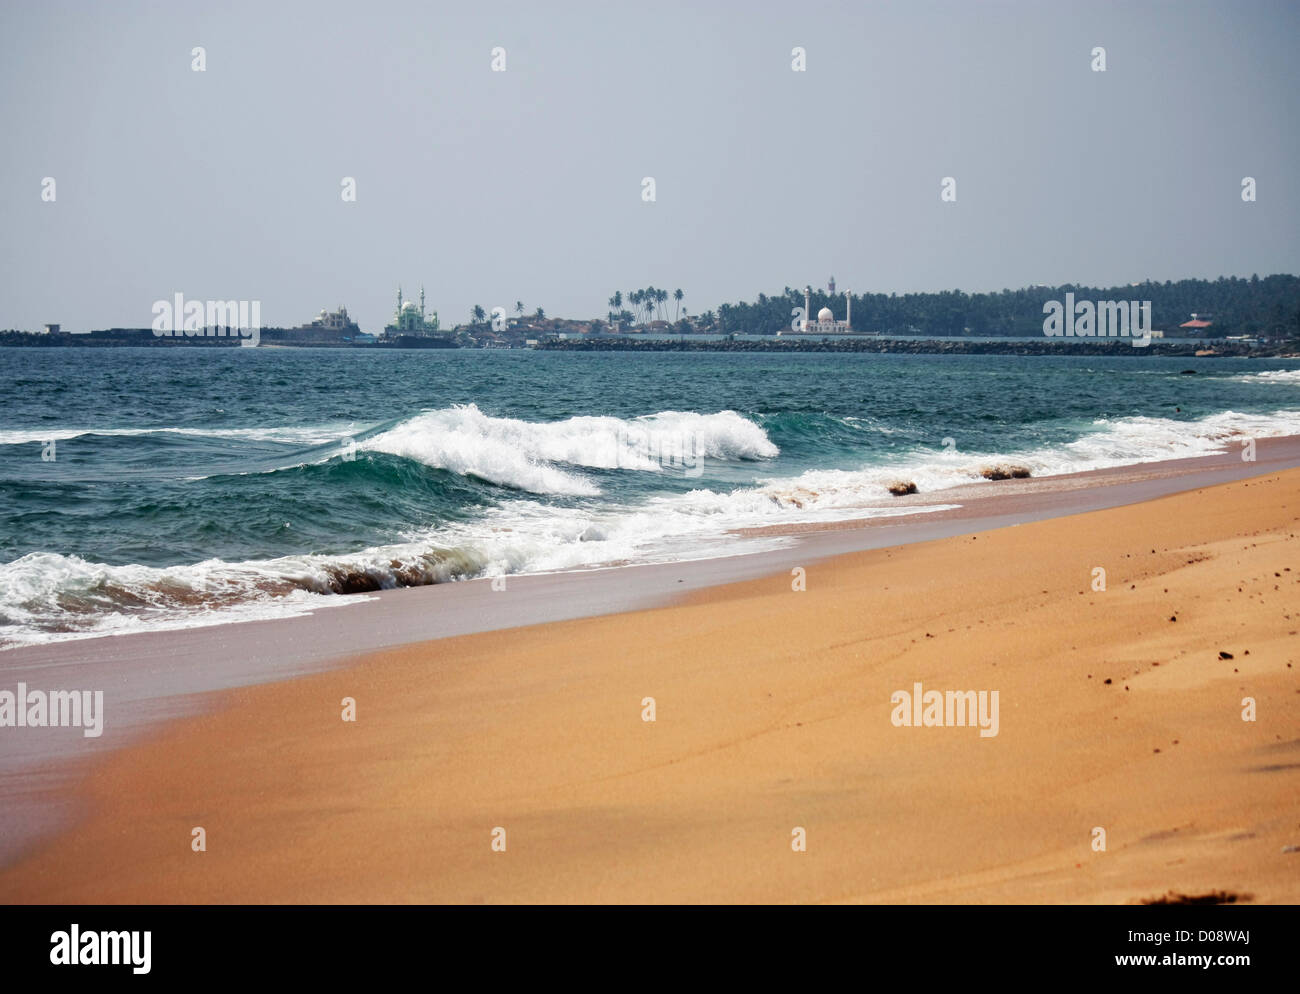 Beach view - tides rising onto the shore - Stock Image